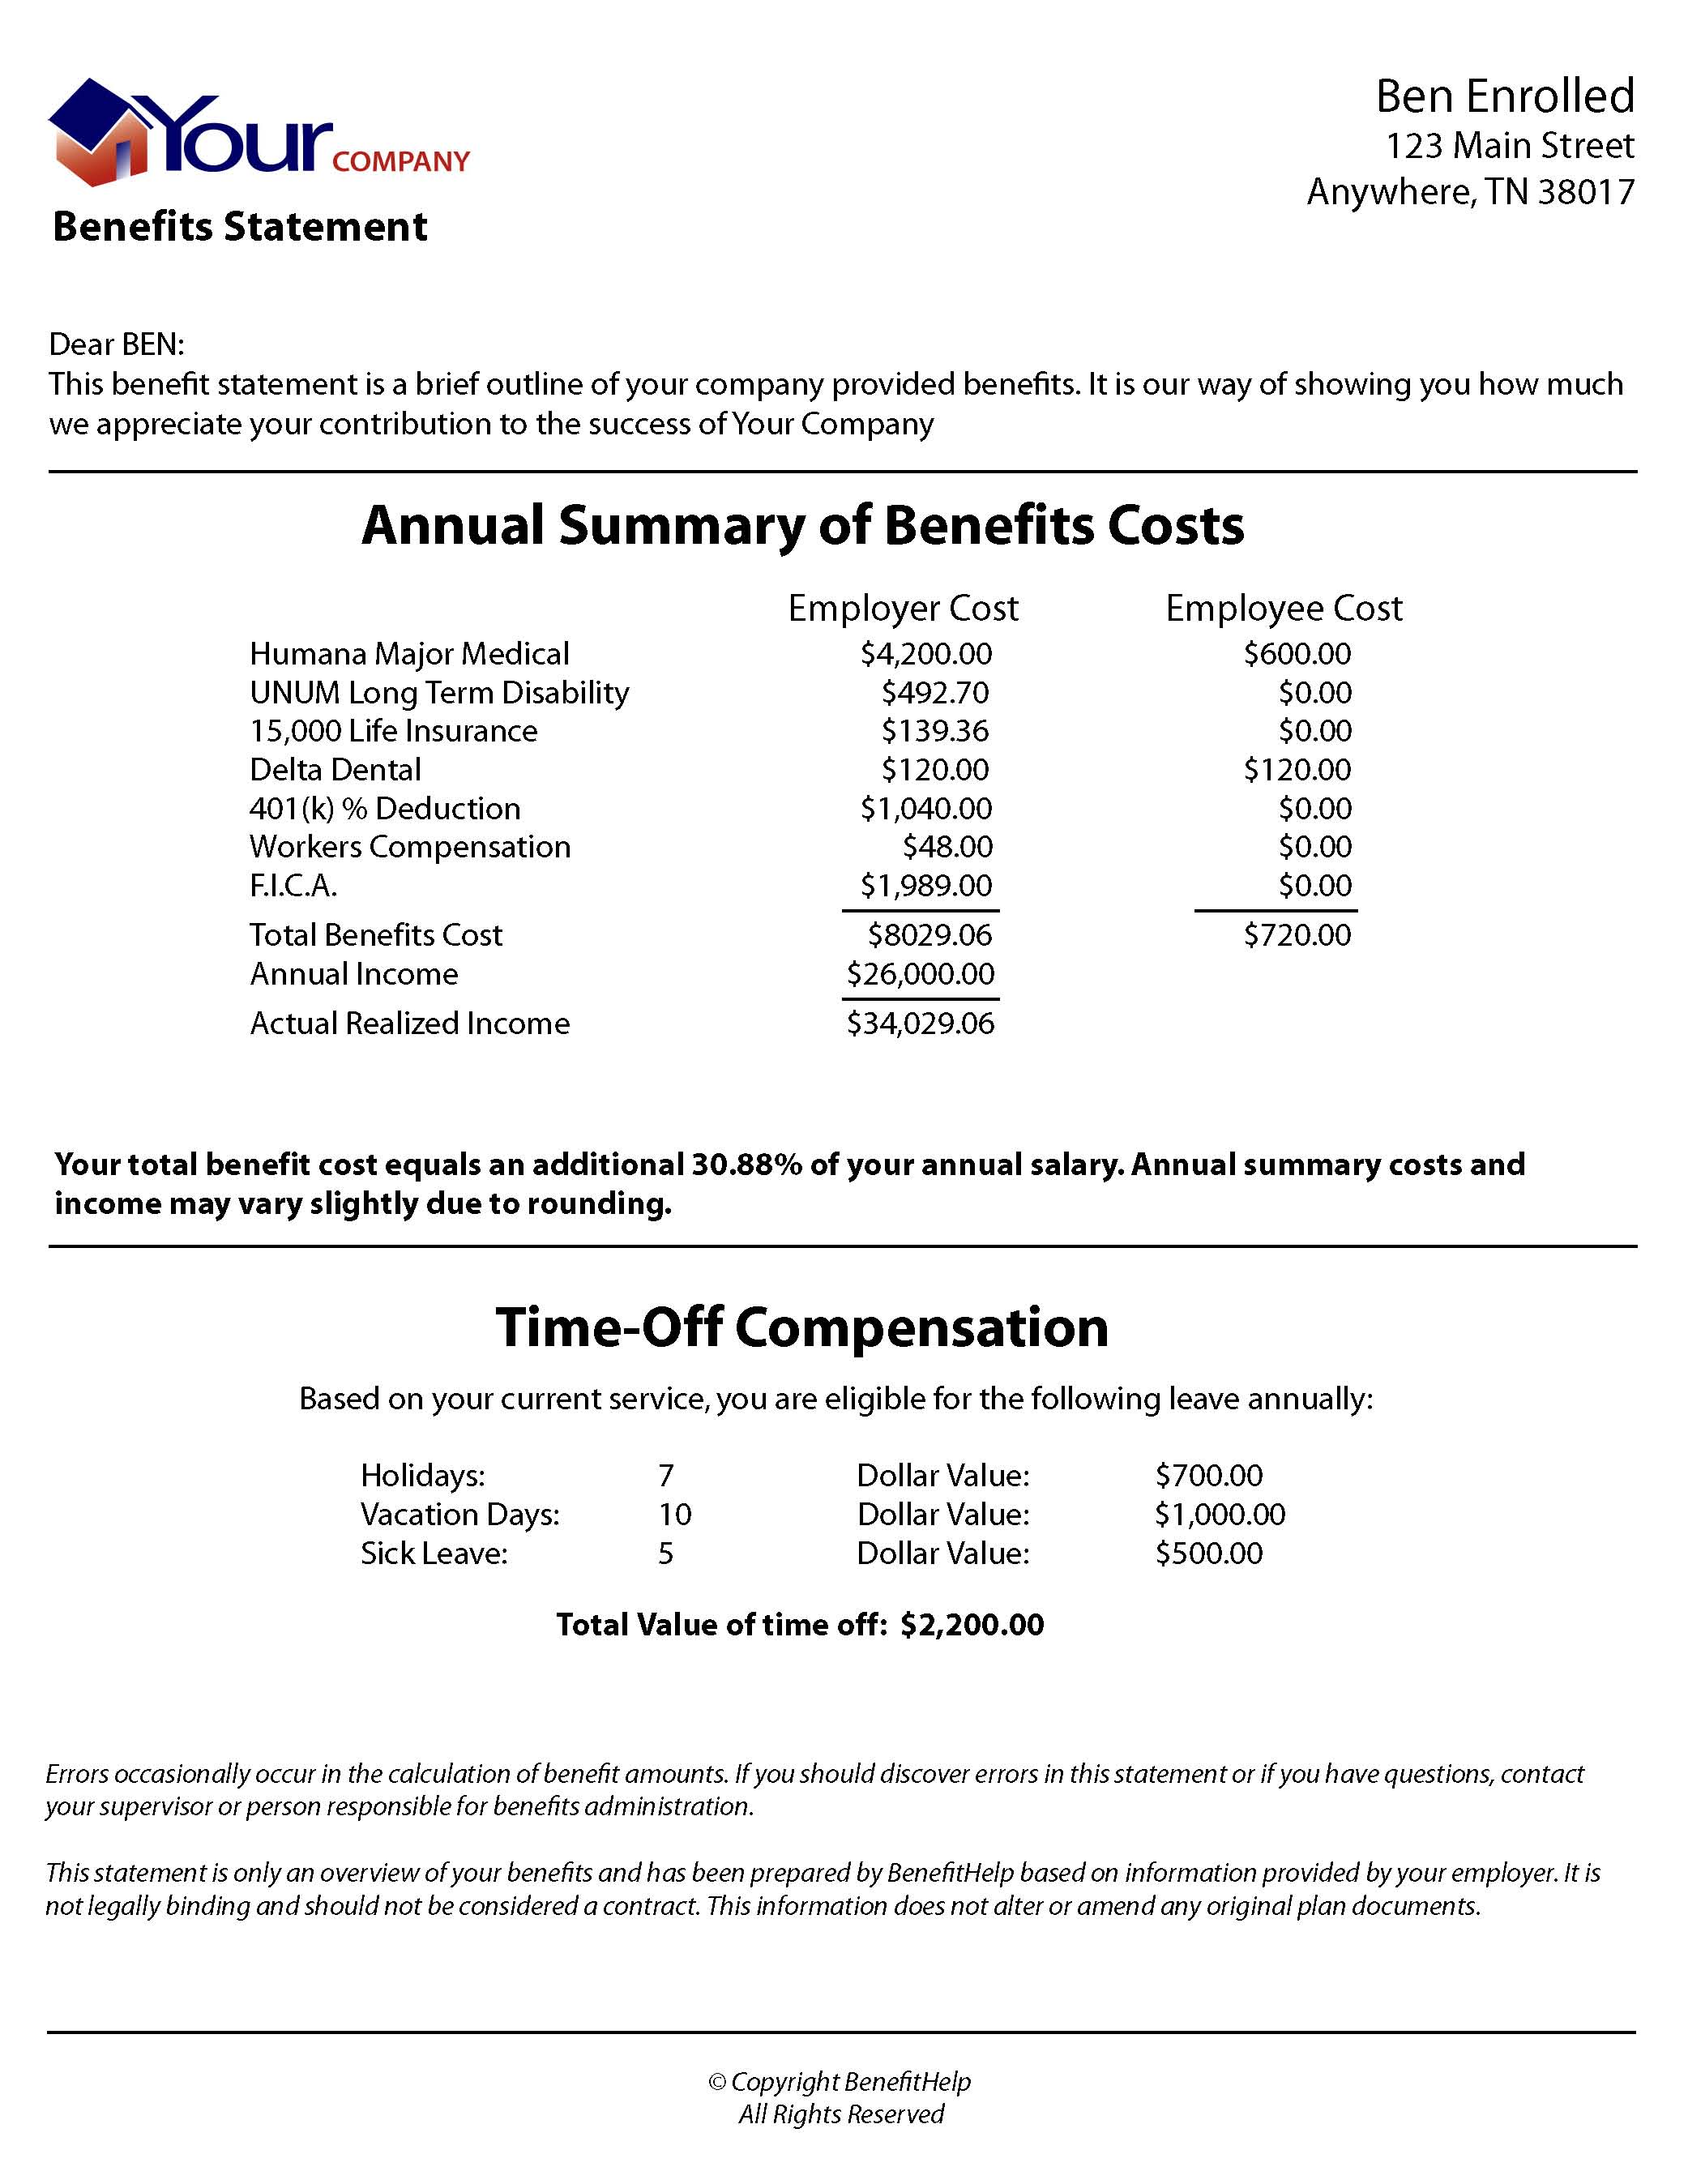 benefithelp presentation these statements are extremely valuable communication tools because they illustrate the value of an employees total compensation package